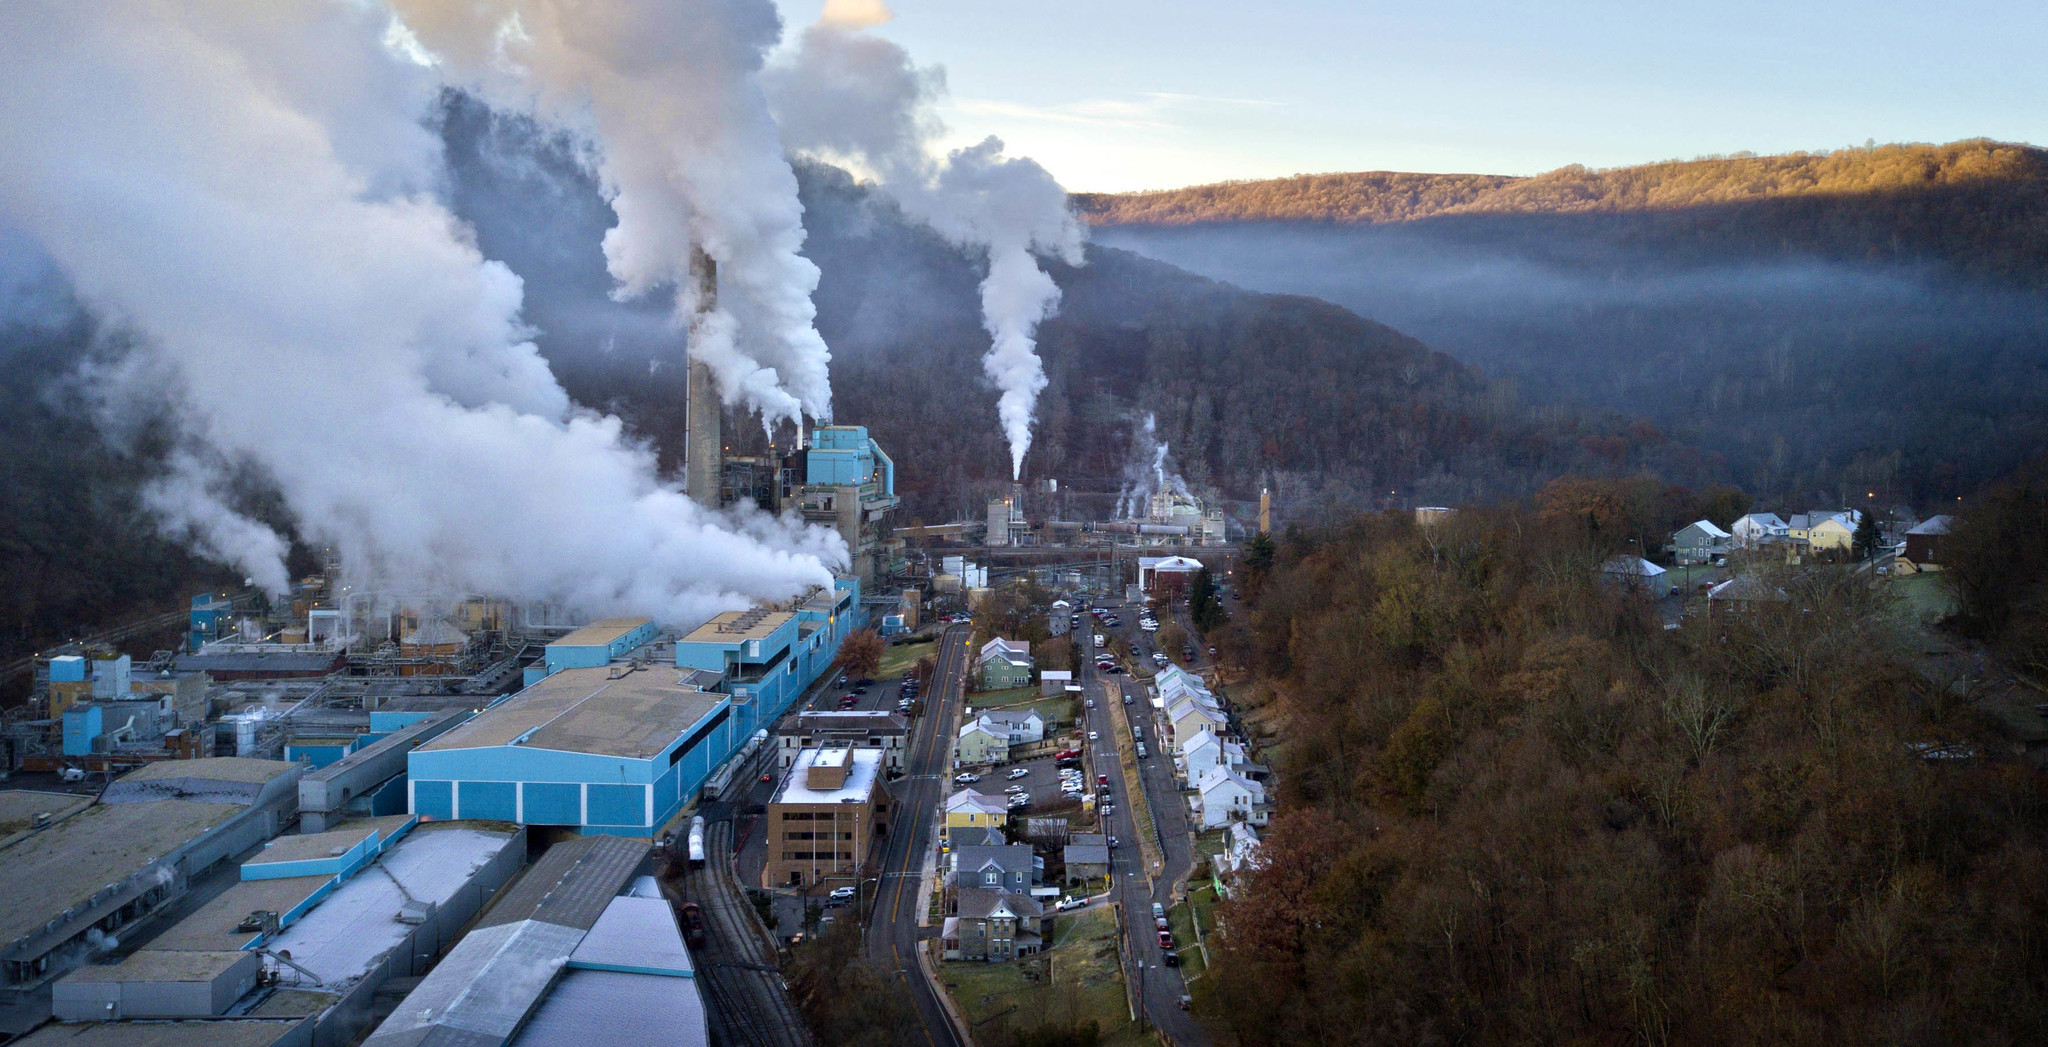 131-year-old Luke paper mill in Western Maryland to close